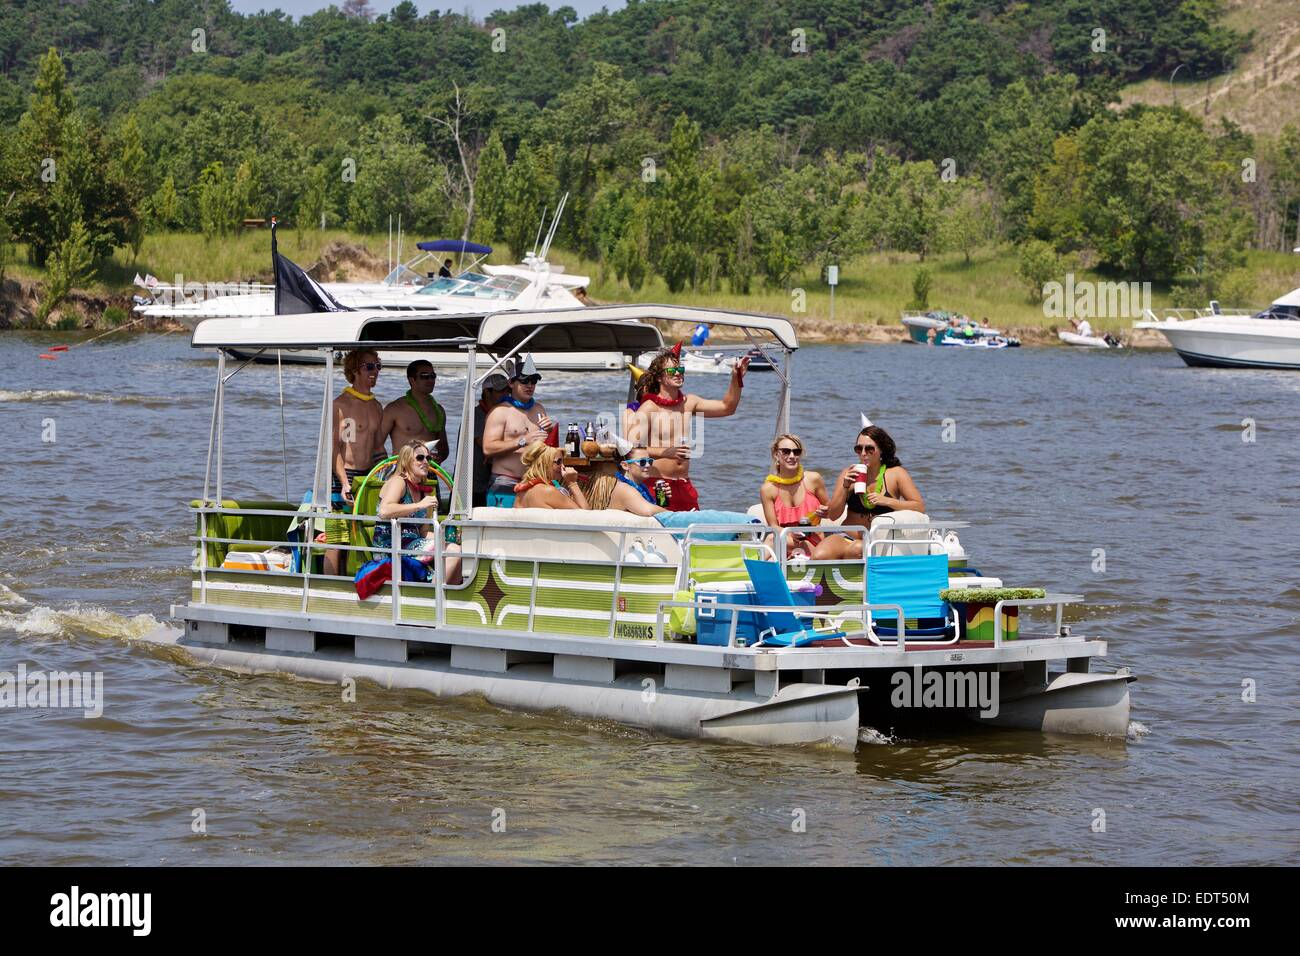 Revelers partying on a pontoon on the Grand River in Grand Haven, Michigan during the Coast Guard Festival - Stock Image